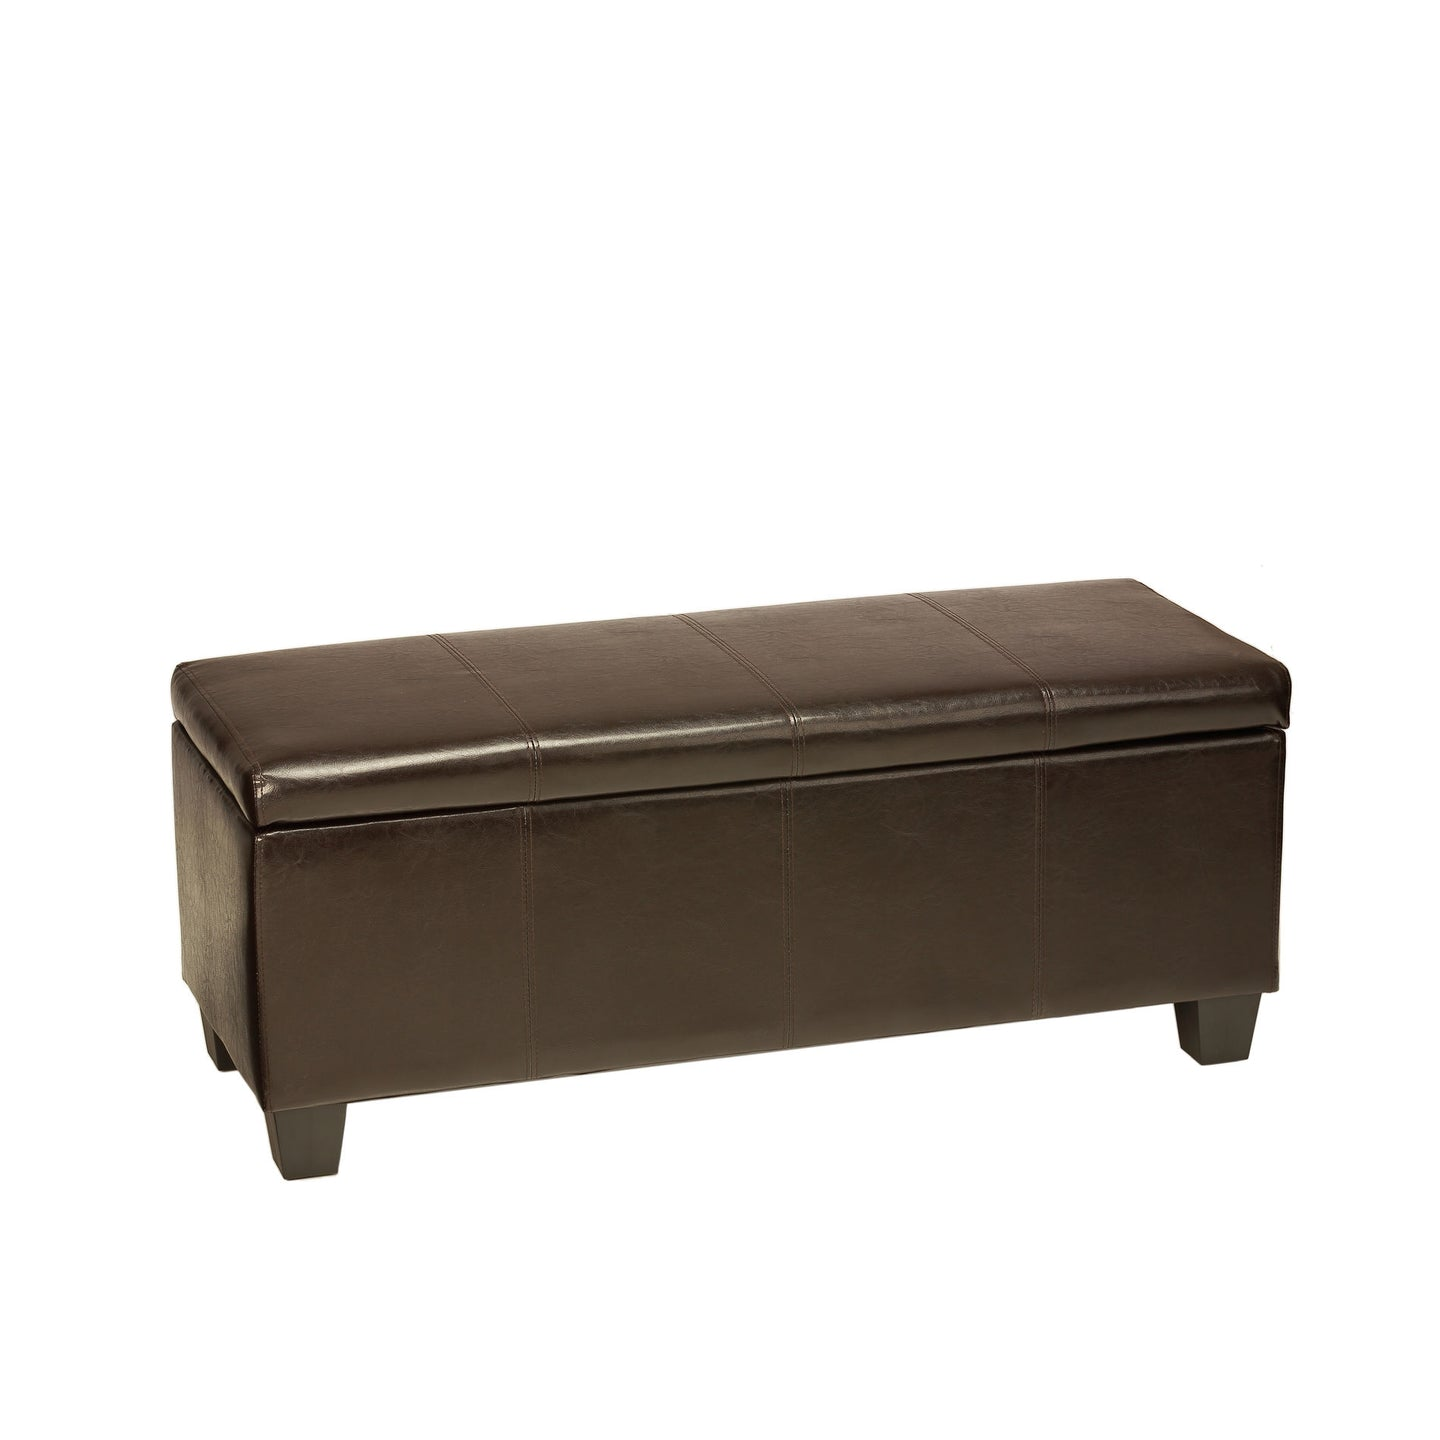 Cortesi Home Nives Espresso Brown Long Storage Ottoman Bench